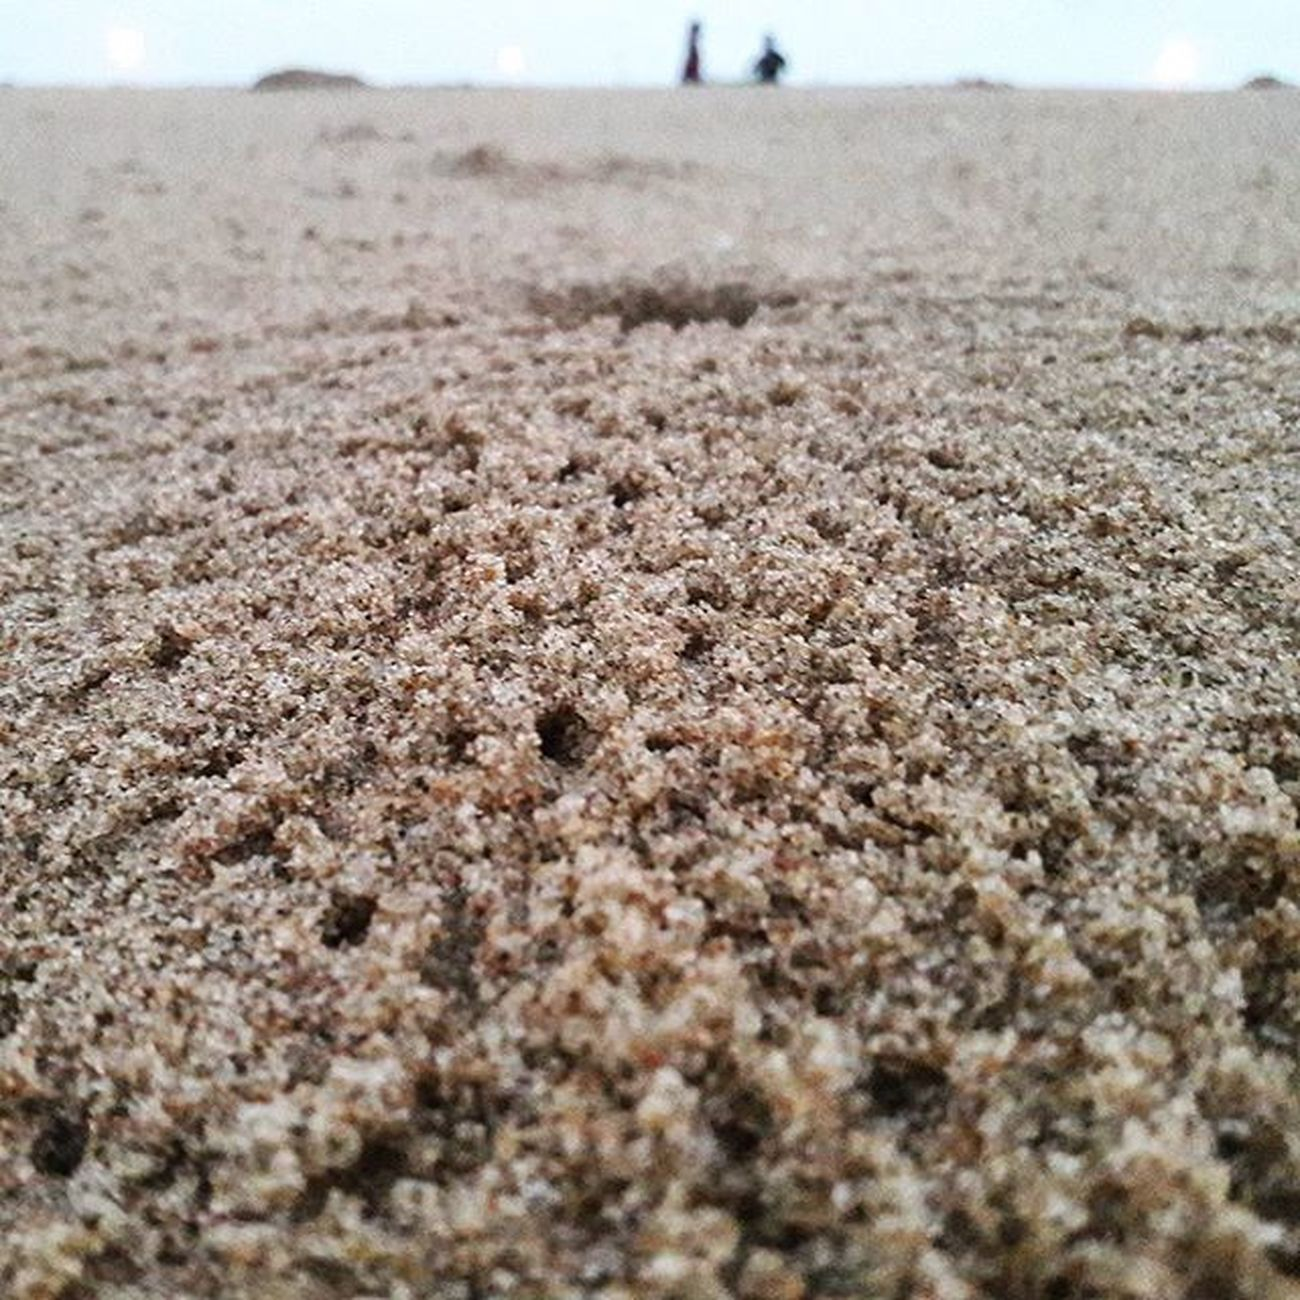 🐾Way of Crap nest..crab foodpath..🐾 Crab Nest Hole Crabnests Beachphotography Beach Sand Way Foodpath Pavement Mobilephotography Mobilecam Mobileshotz_ Instgram Instapic Instaview Natgeo Discoverychannel Animals